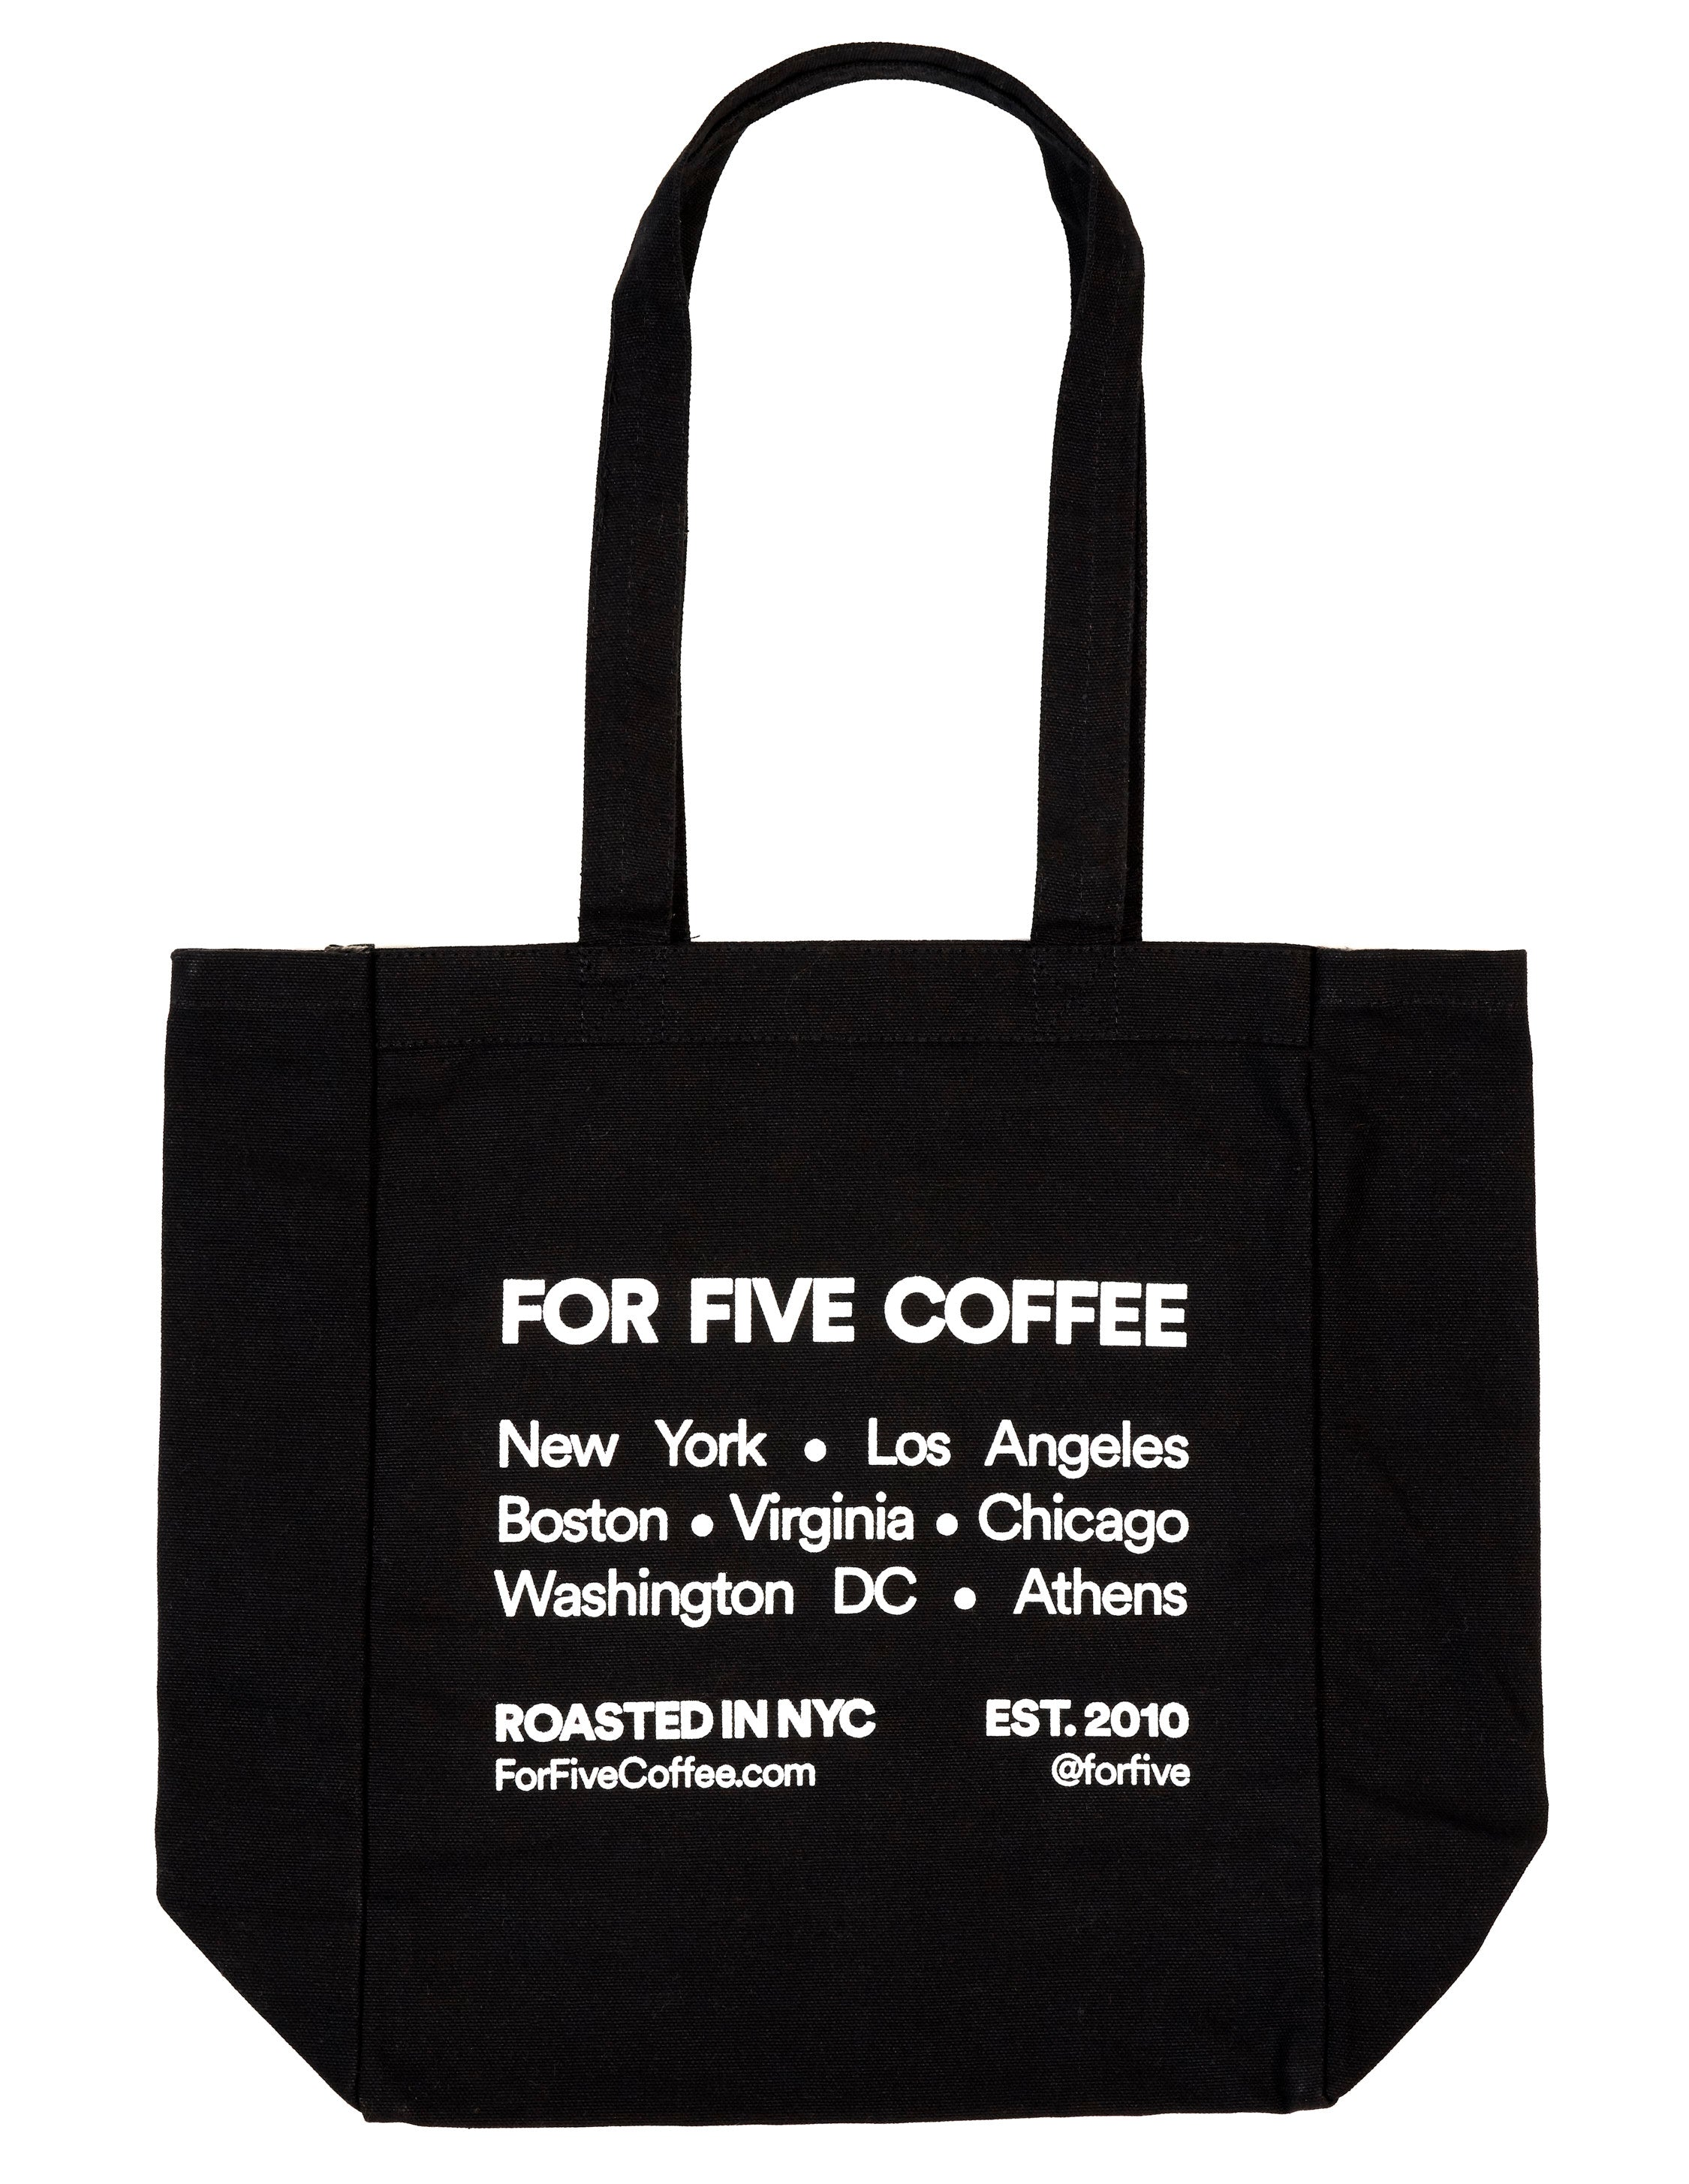 For The World Tote Bag